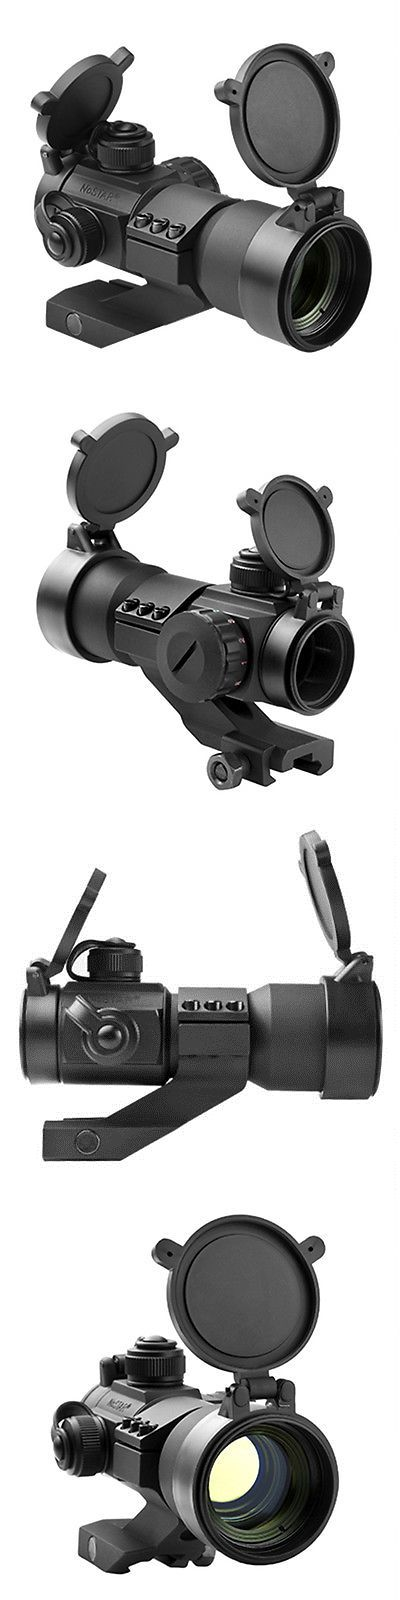 Sights 47240: Ncstar Tactical Scope W/ Red Green Blue Aiming Dot Fits Weaver Picatinny Rails BUY IT NOW ONLY: $50.15